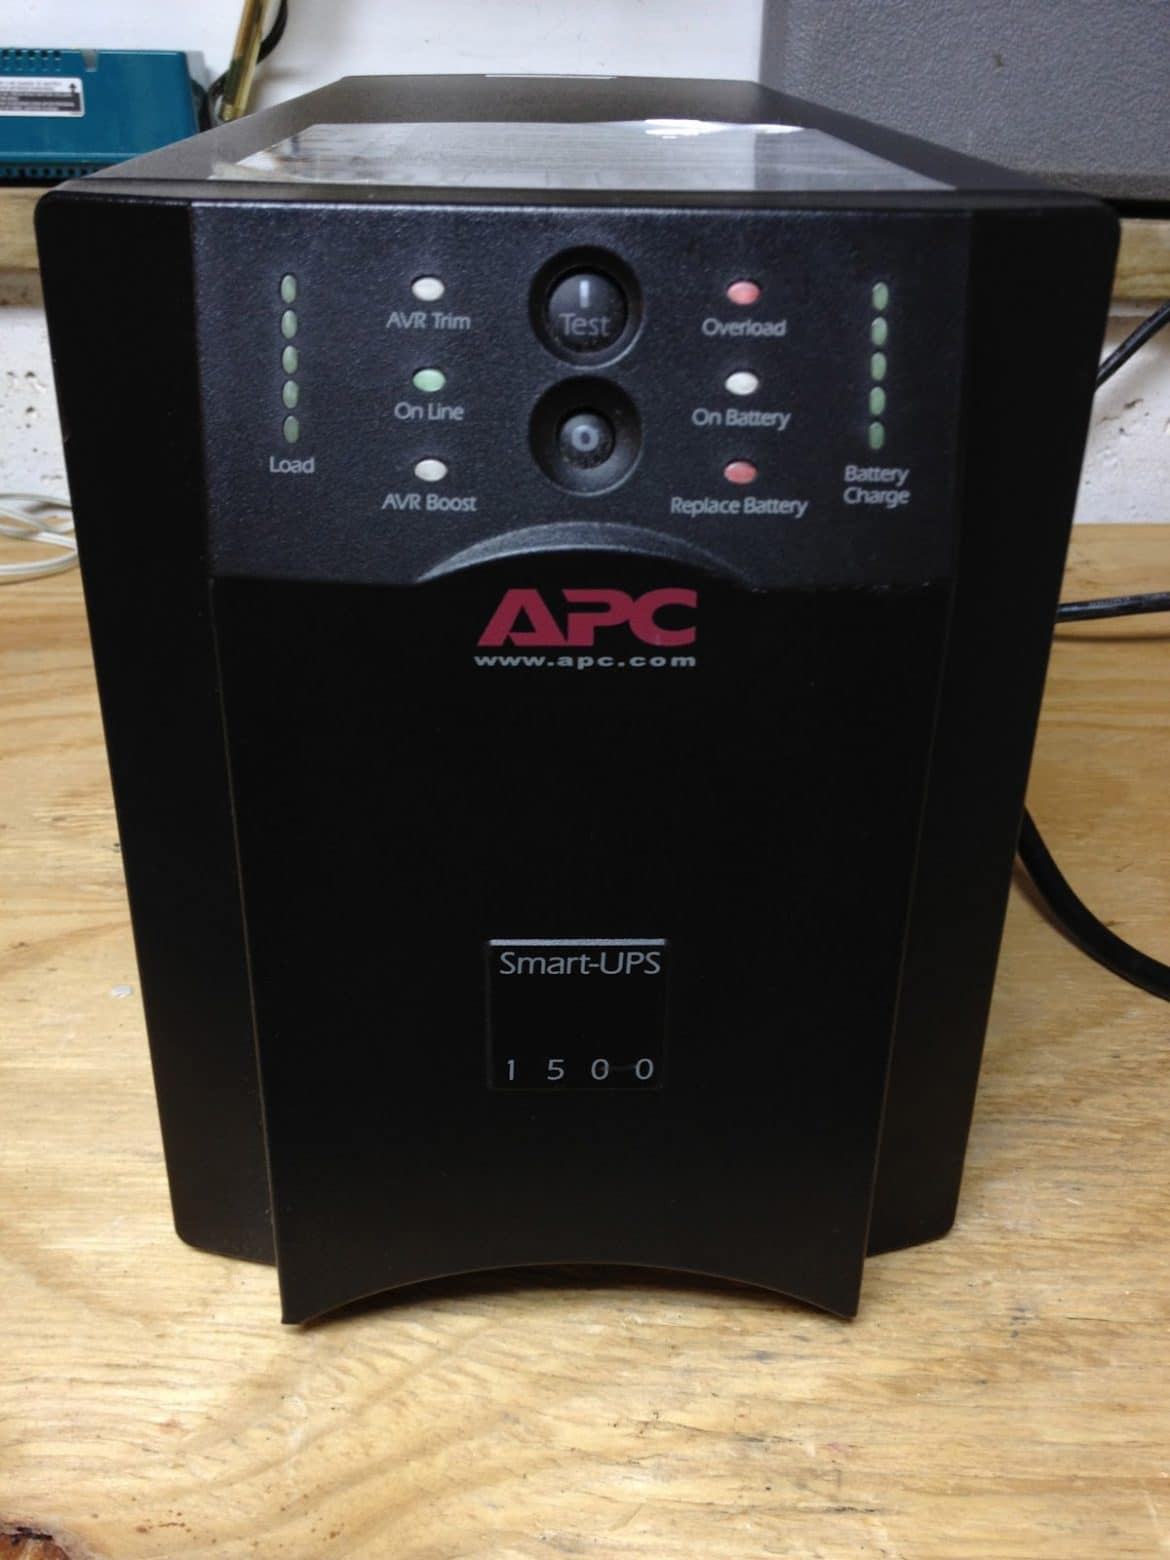 How To Replace The Battery In An Apc Smart Ups 1500